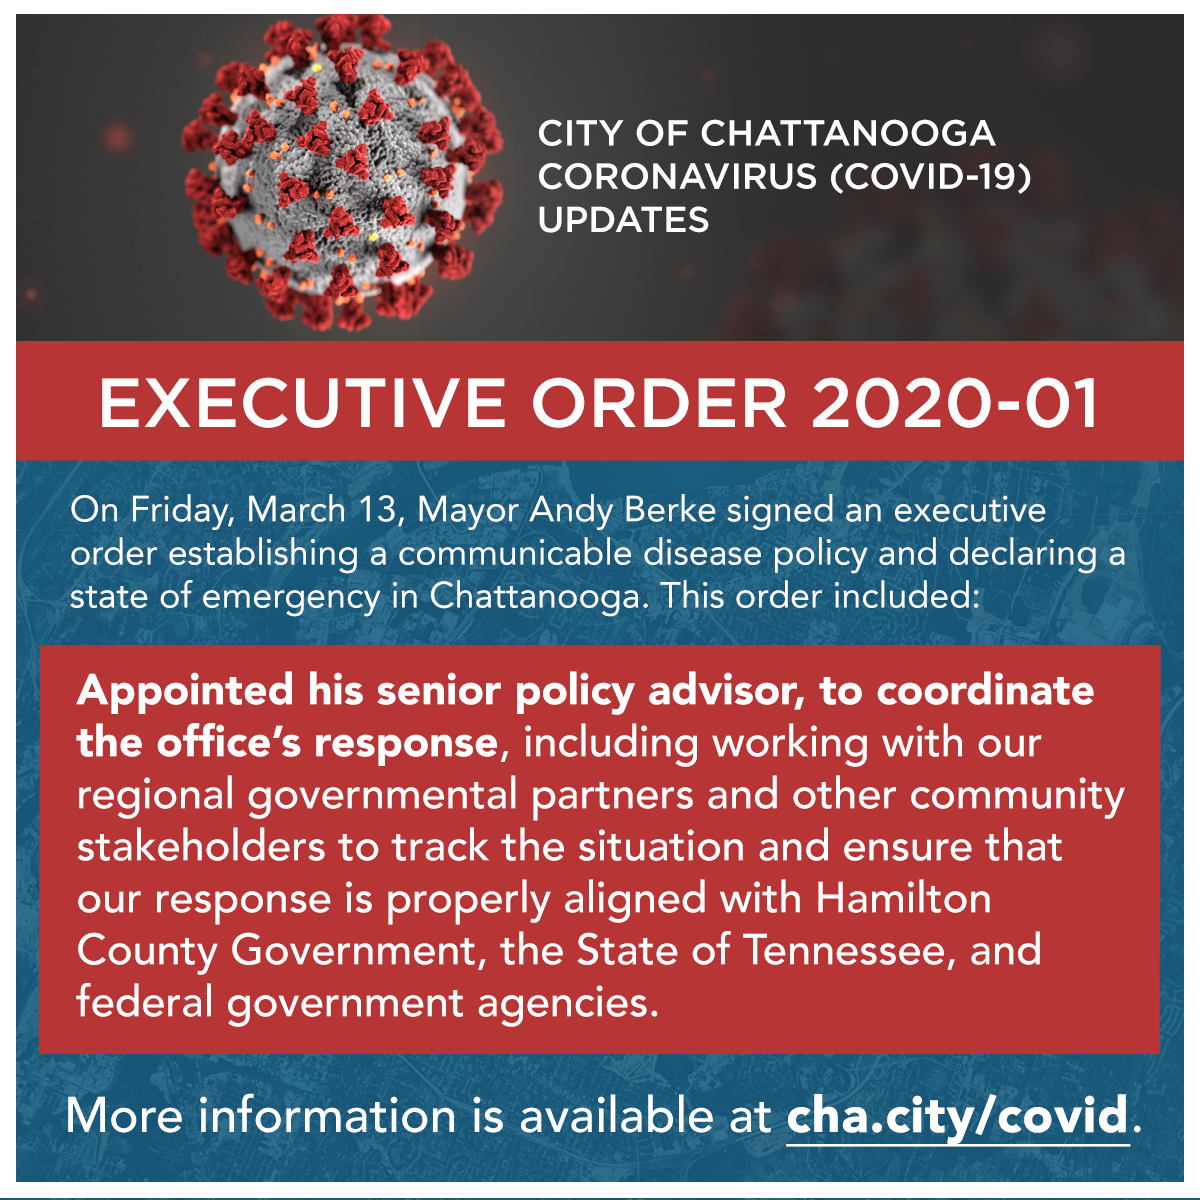 City of Chattanooga (@Chattanooga_gov) | Twitter